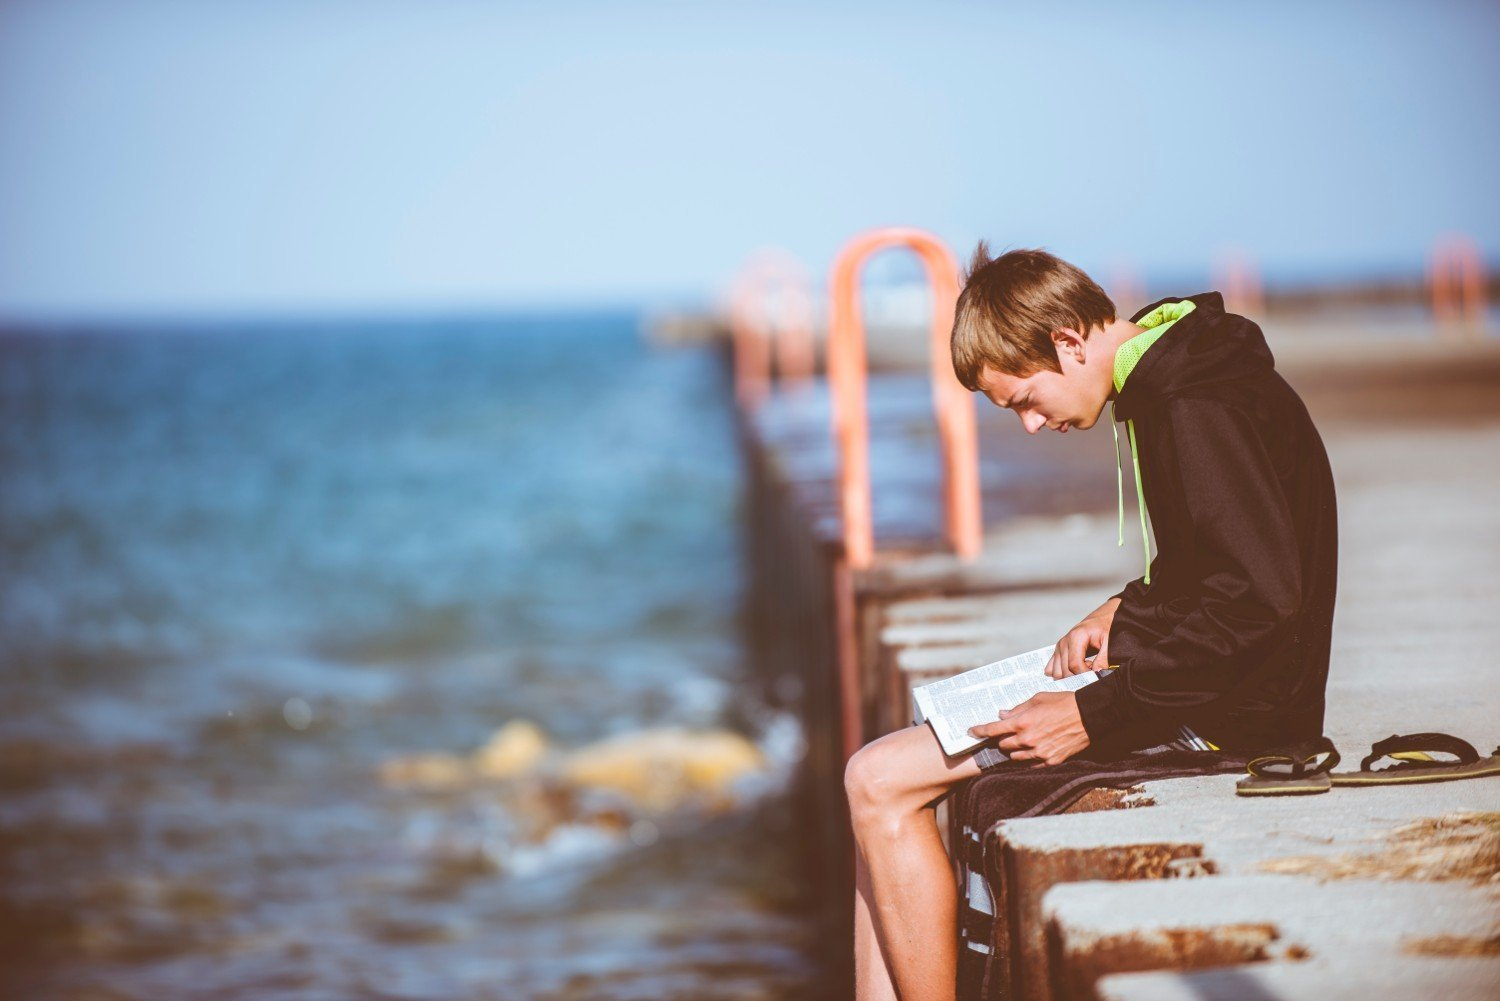 boy-reading-on-pier.jpg